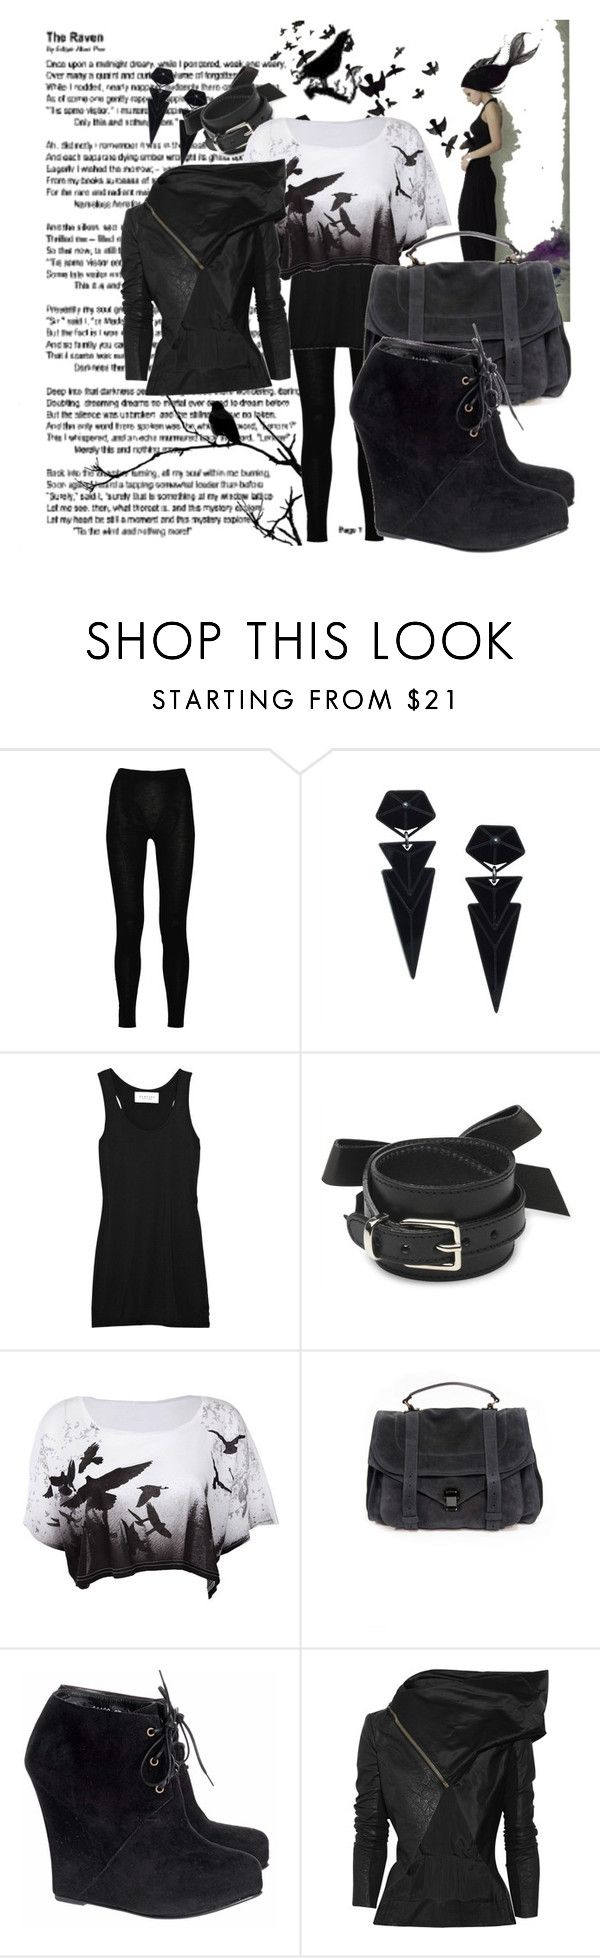 """""""I should fly"""" by luajane ❤ liked on Polyvore featuring Laster, Raven Denim, Rick Owens, Zarah Voigt, Demylee, Sonia by Sonia Rykiel, Proenza Schouler and Opening Ceremony"""